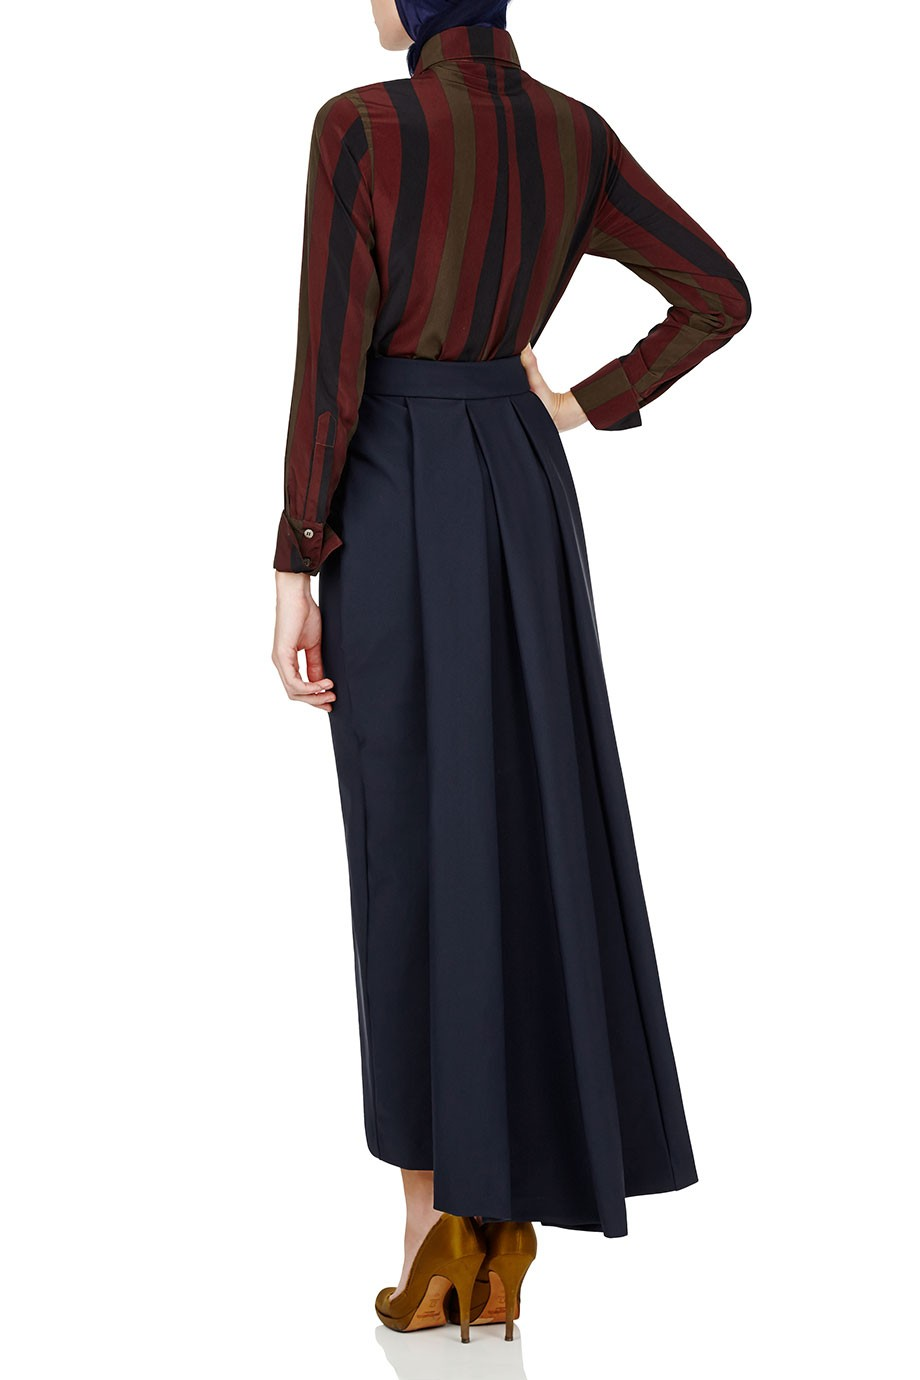 Diana-Kotb-Game-Maker-Shirt-Time-Piece-Skirt-Navy-02